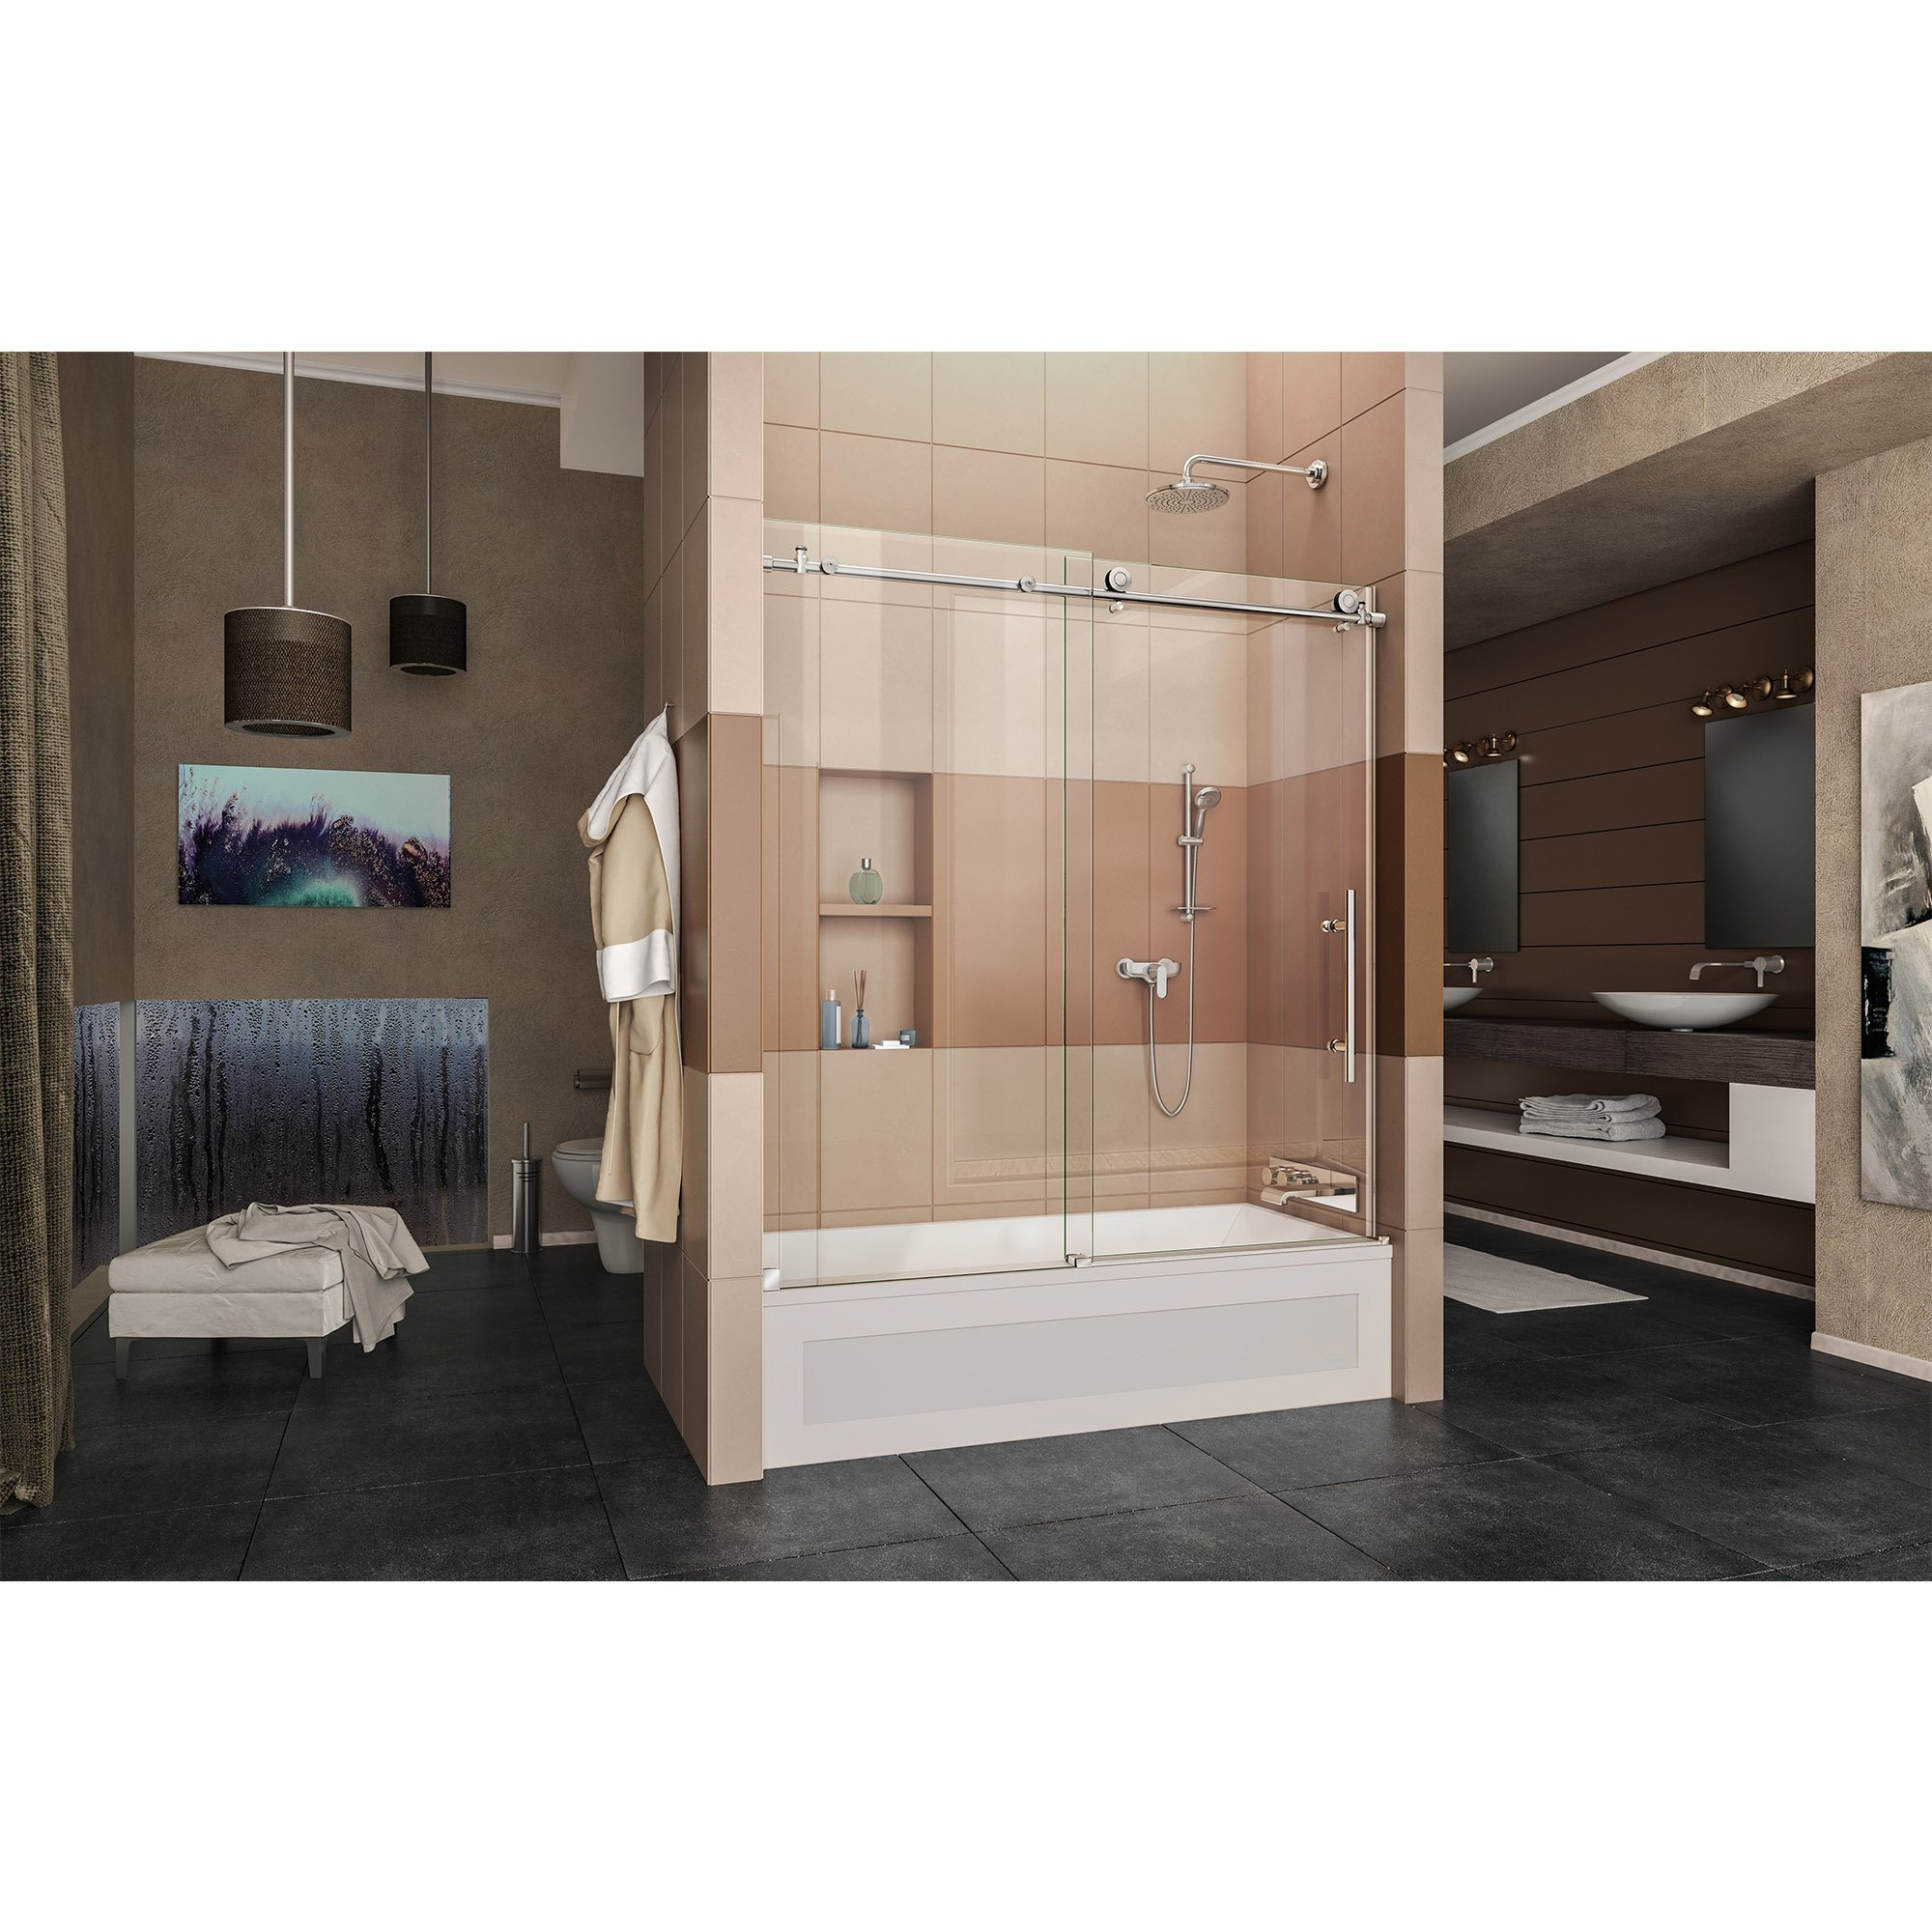 DreamLine Enigma-X 55-59 in. W x 62 in. H Fully Frameless Sliding Tub Door in Polished Stainless Steel, SHDR-61606210-08 by DreamLine (Image #4)